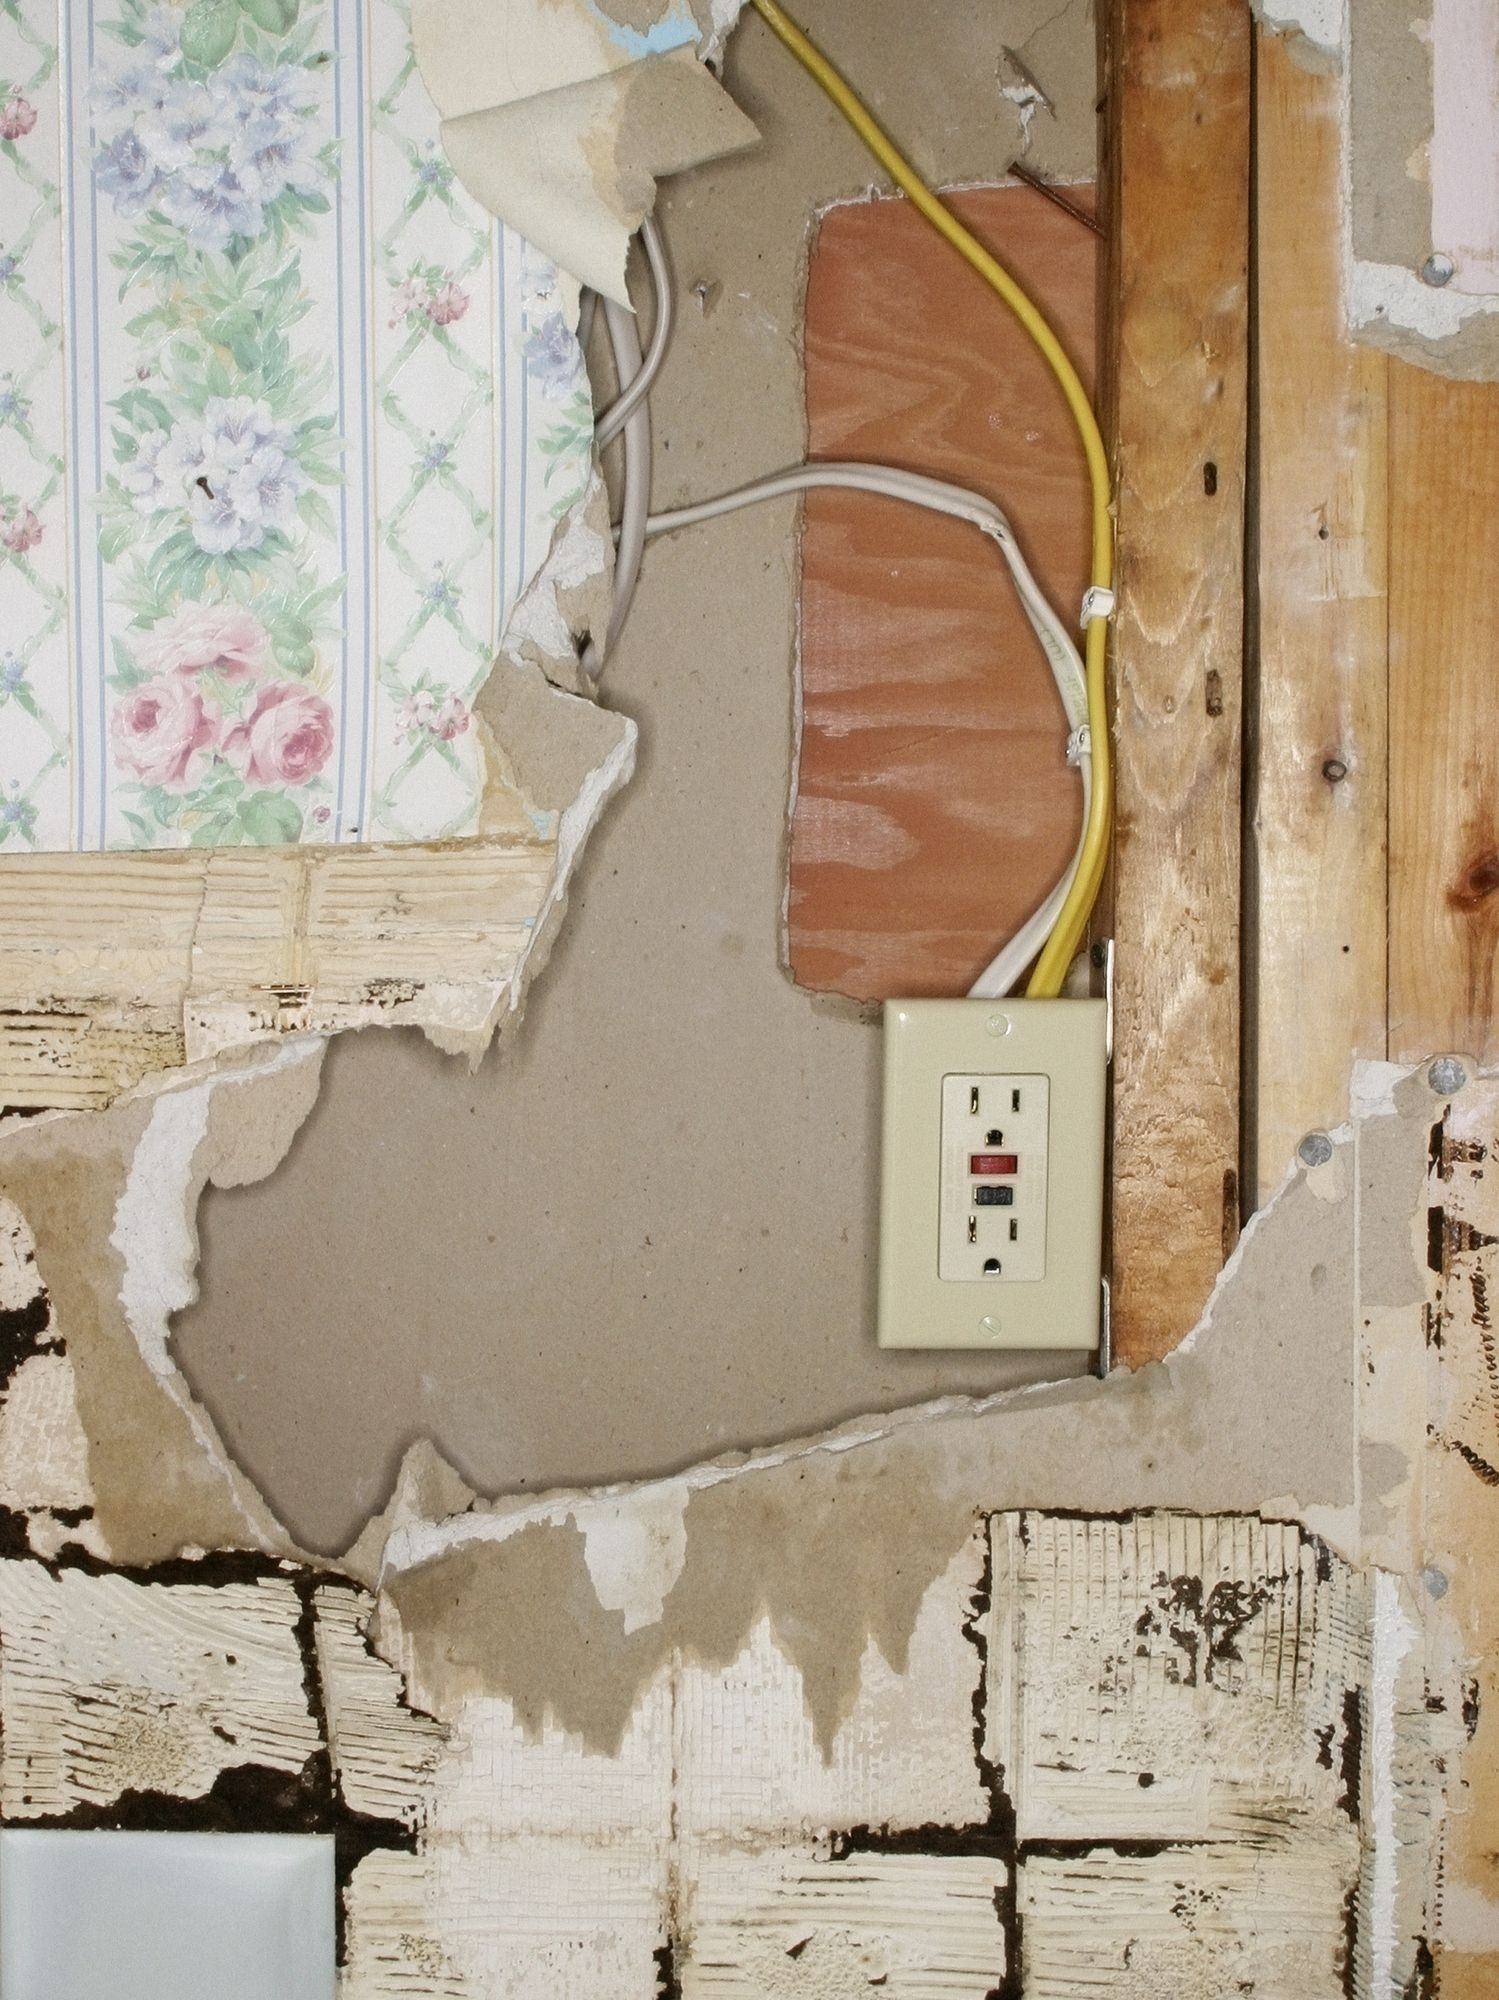 Is My Old Electrical House Wiring Safe? Where Is Wiring In Walls on